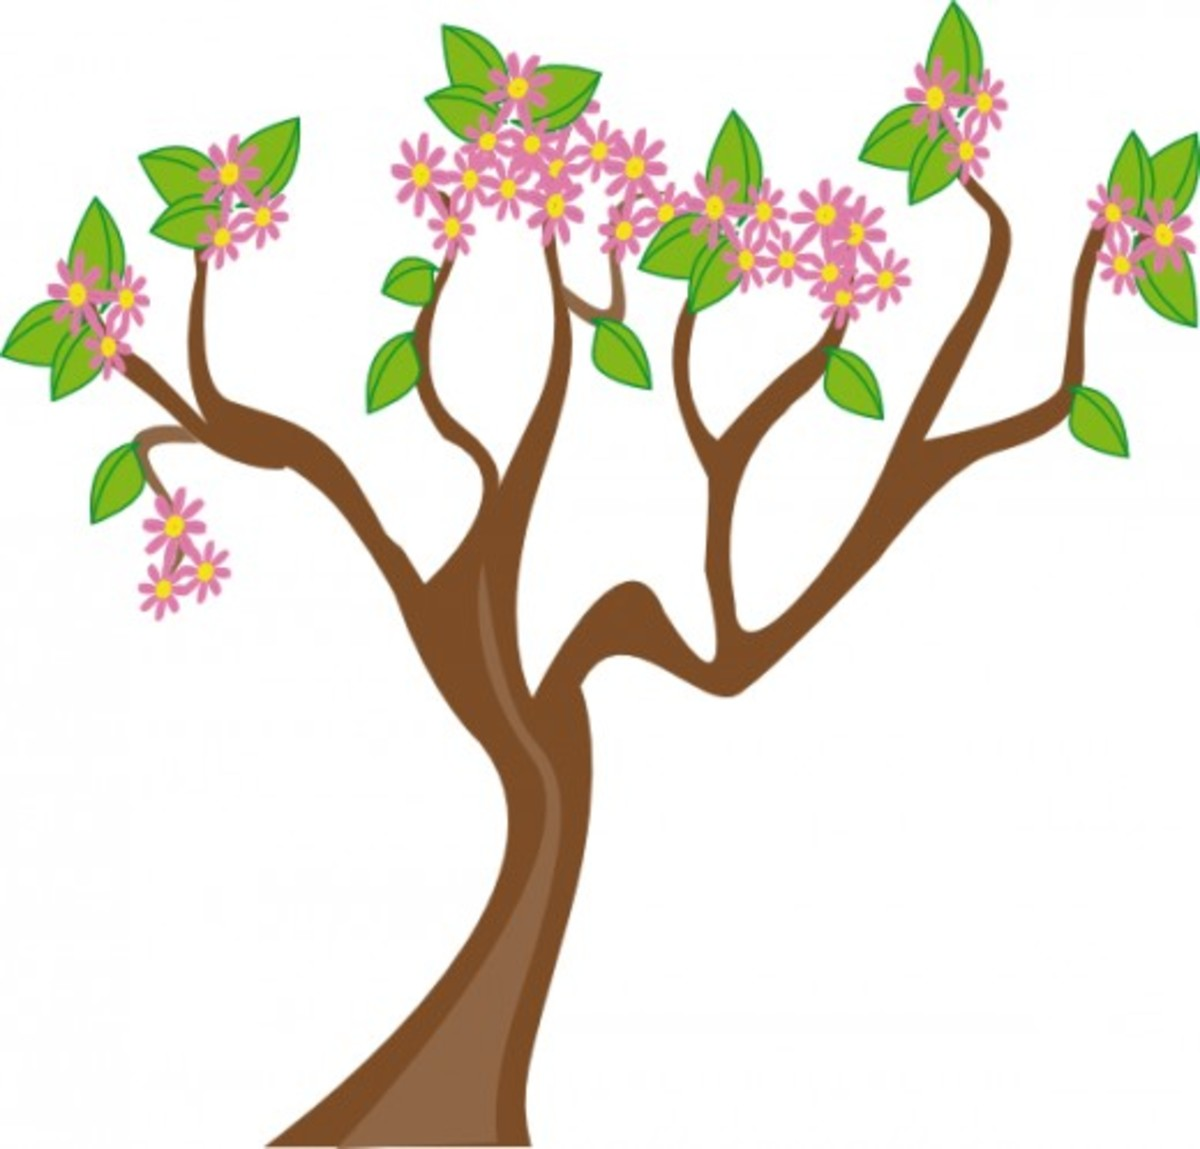 Tree with Pink Flower Blossoms